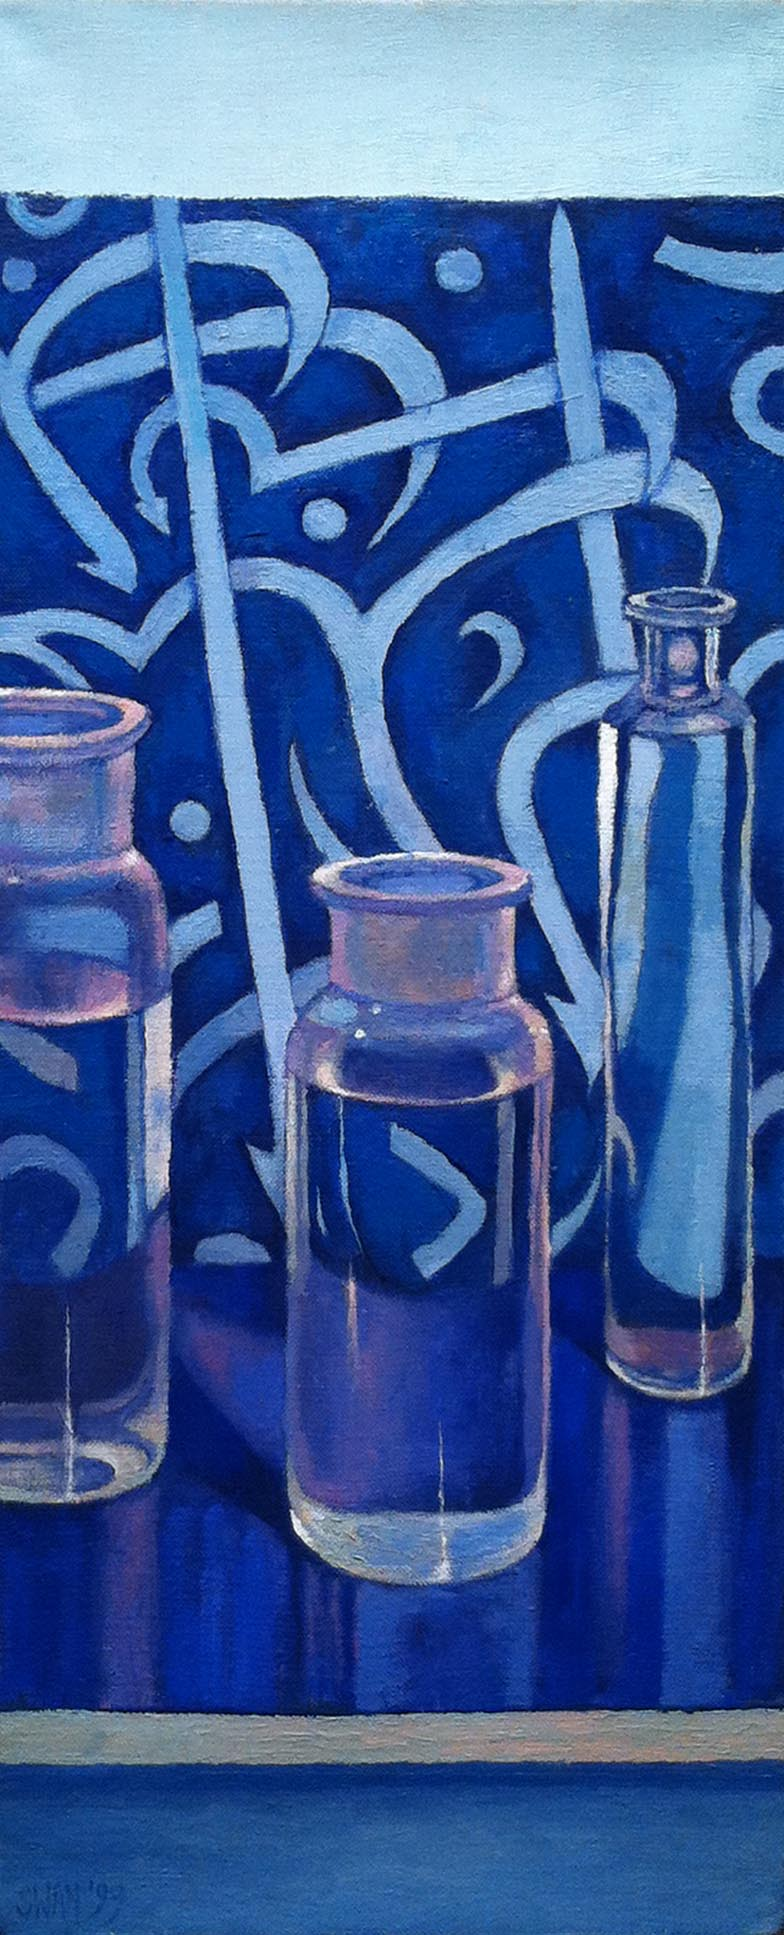 Three Bottles,  1999 oil on linen, 22 x 9 inches